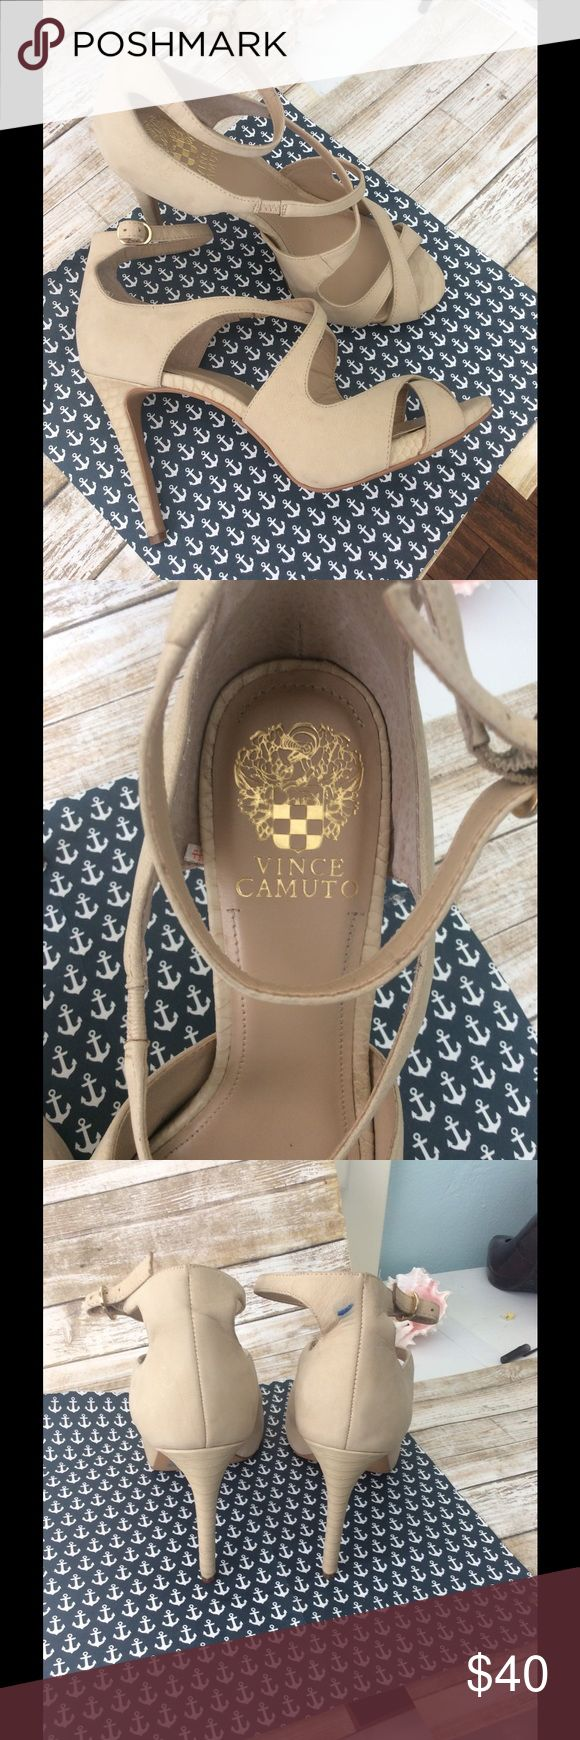 Vince Camuto heels sandals shoes size 71/2 The right shoe has a blue mark in the back I haven tried to remove, see picture. Vince Camuto Shoes Heels